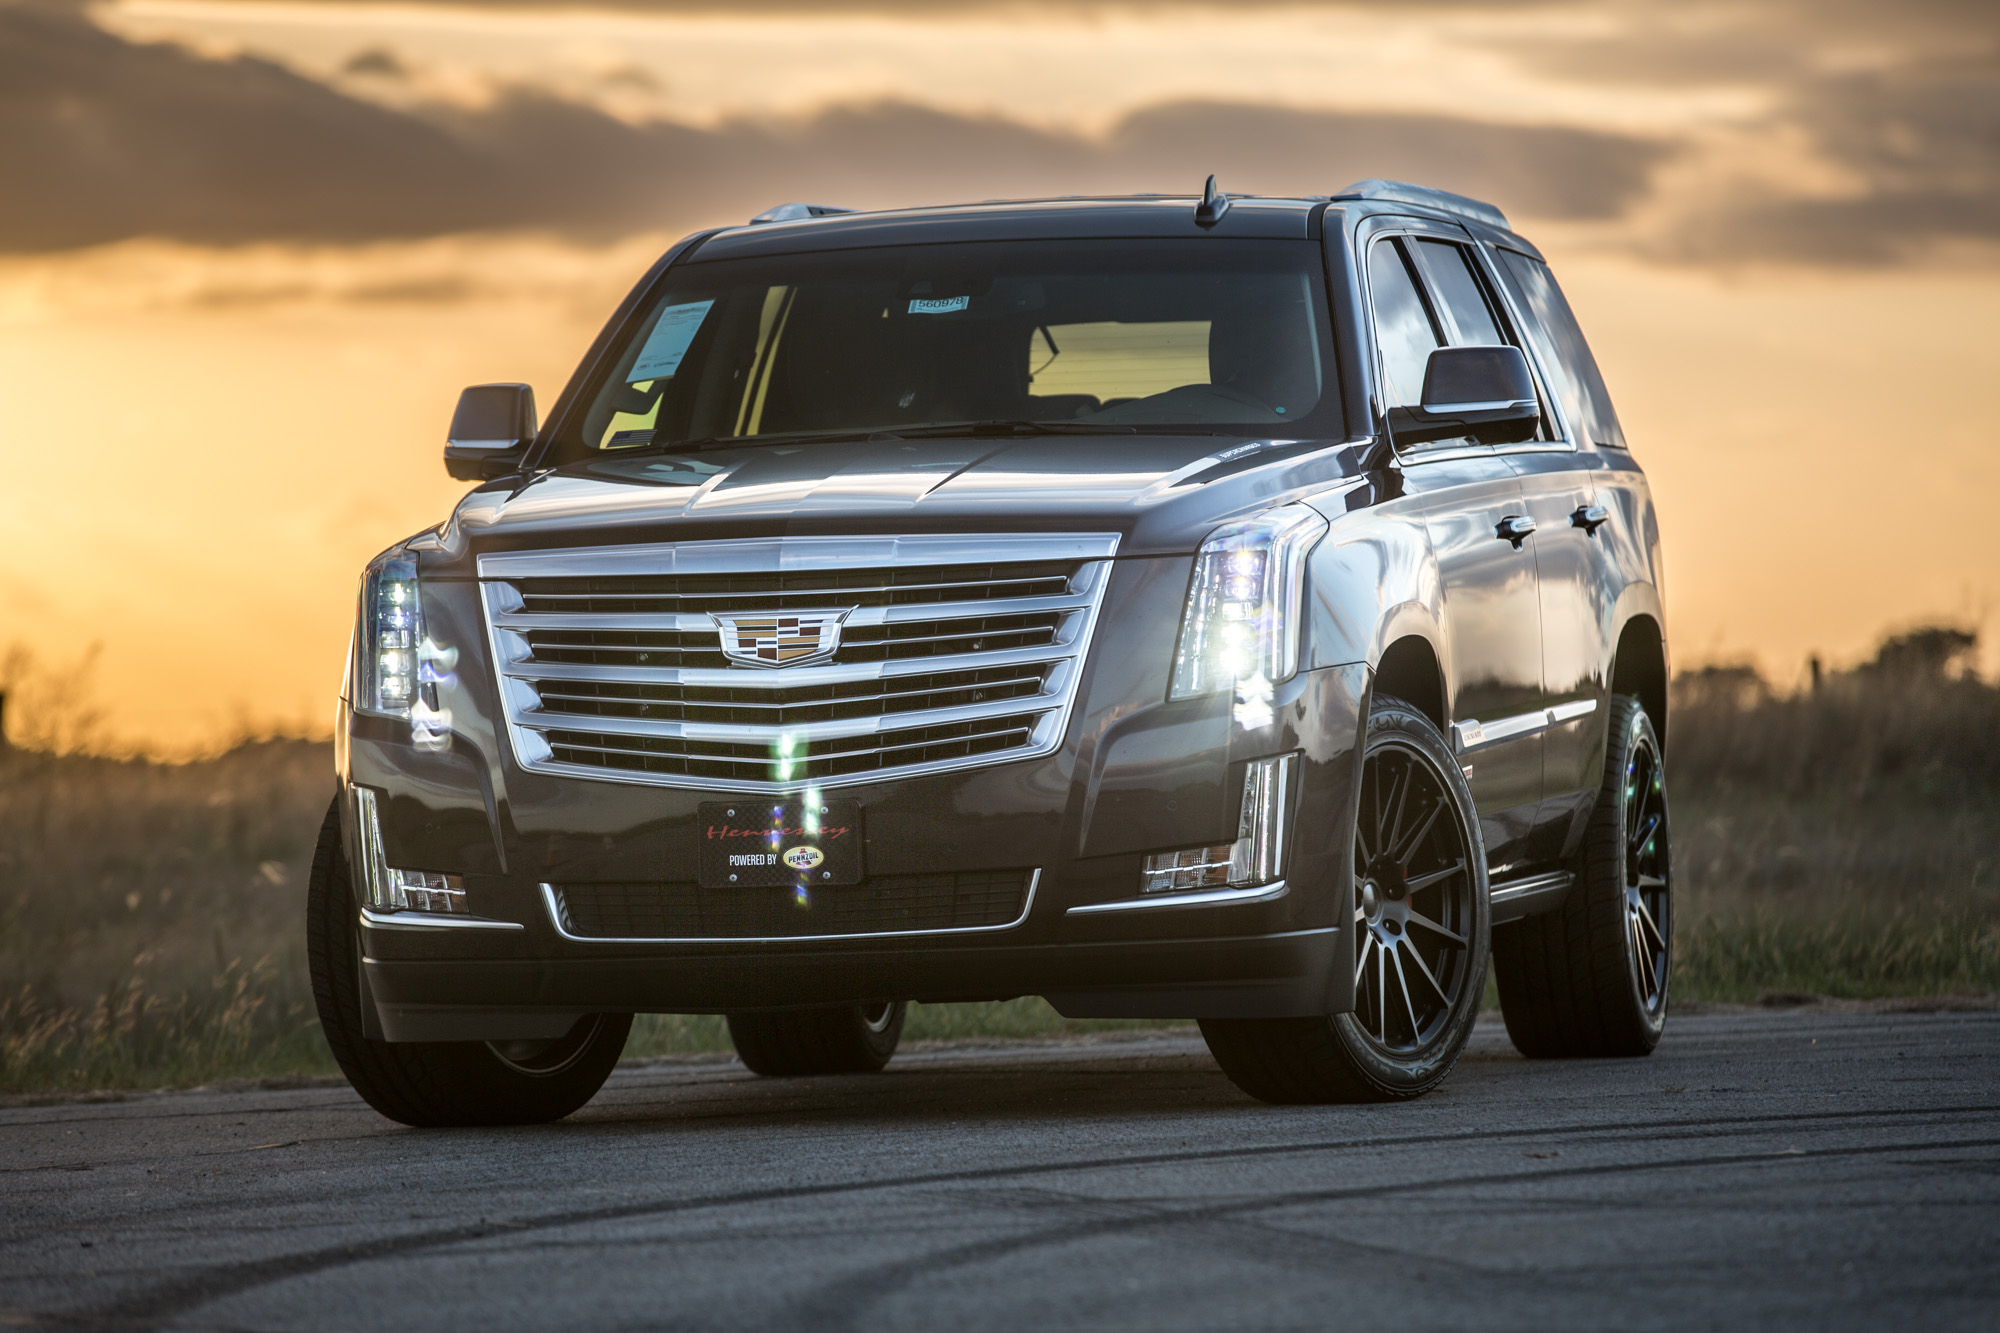 2015-2017 Cadillac Escalade – hennesseyperformance | 日本総代理店